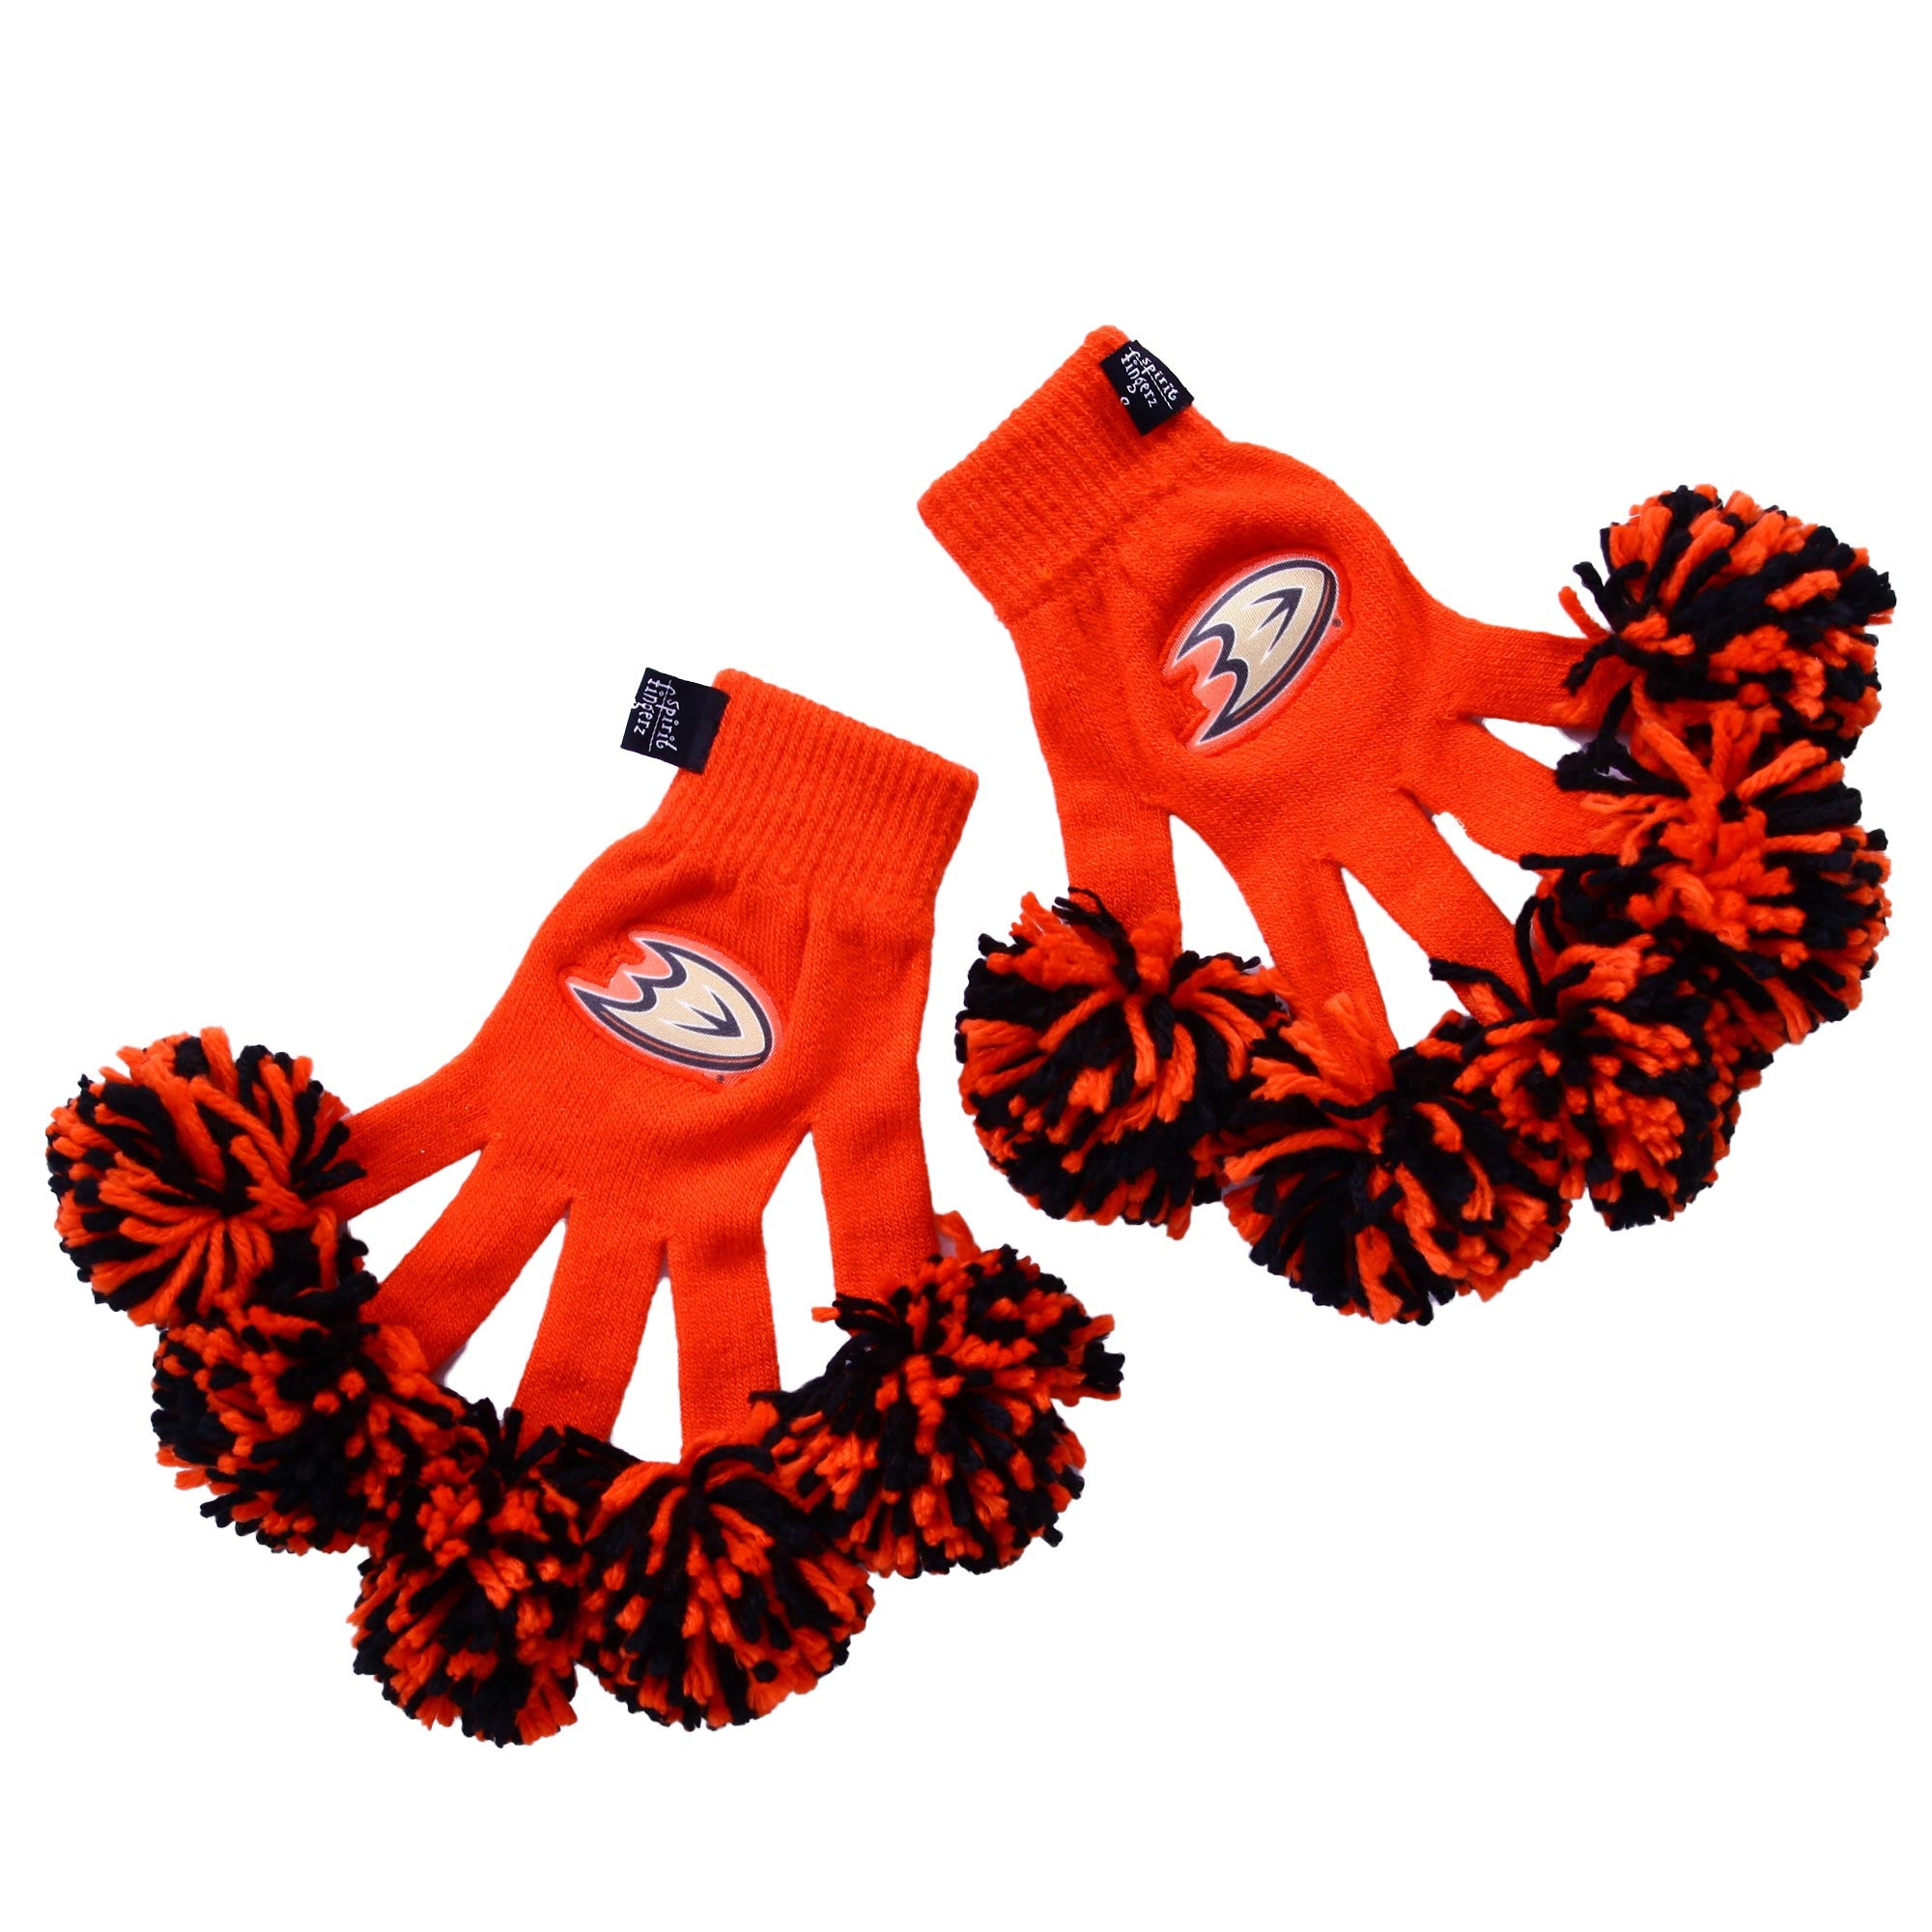 Anaheim Ducks NHL Spirit Fingerz Cheerleading Pom-Pom Gloves